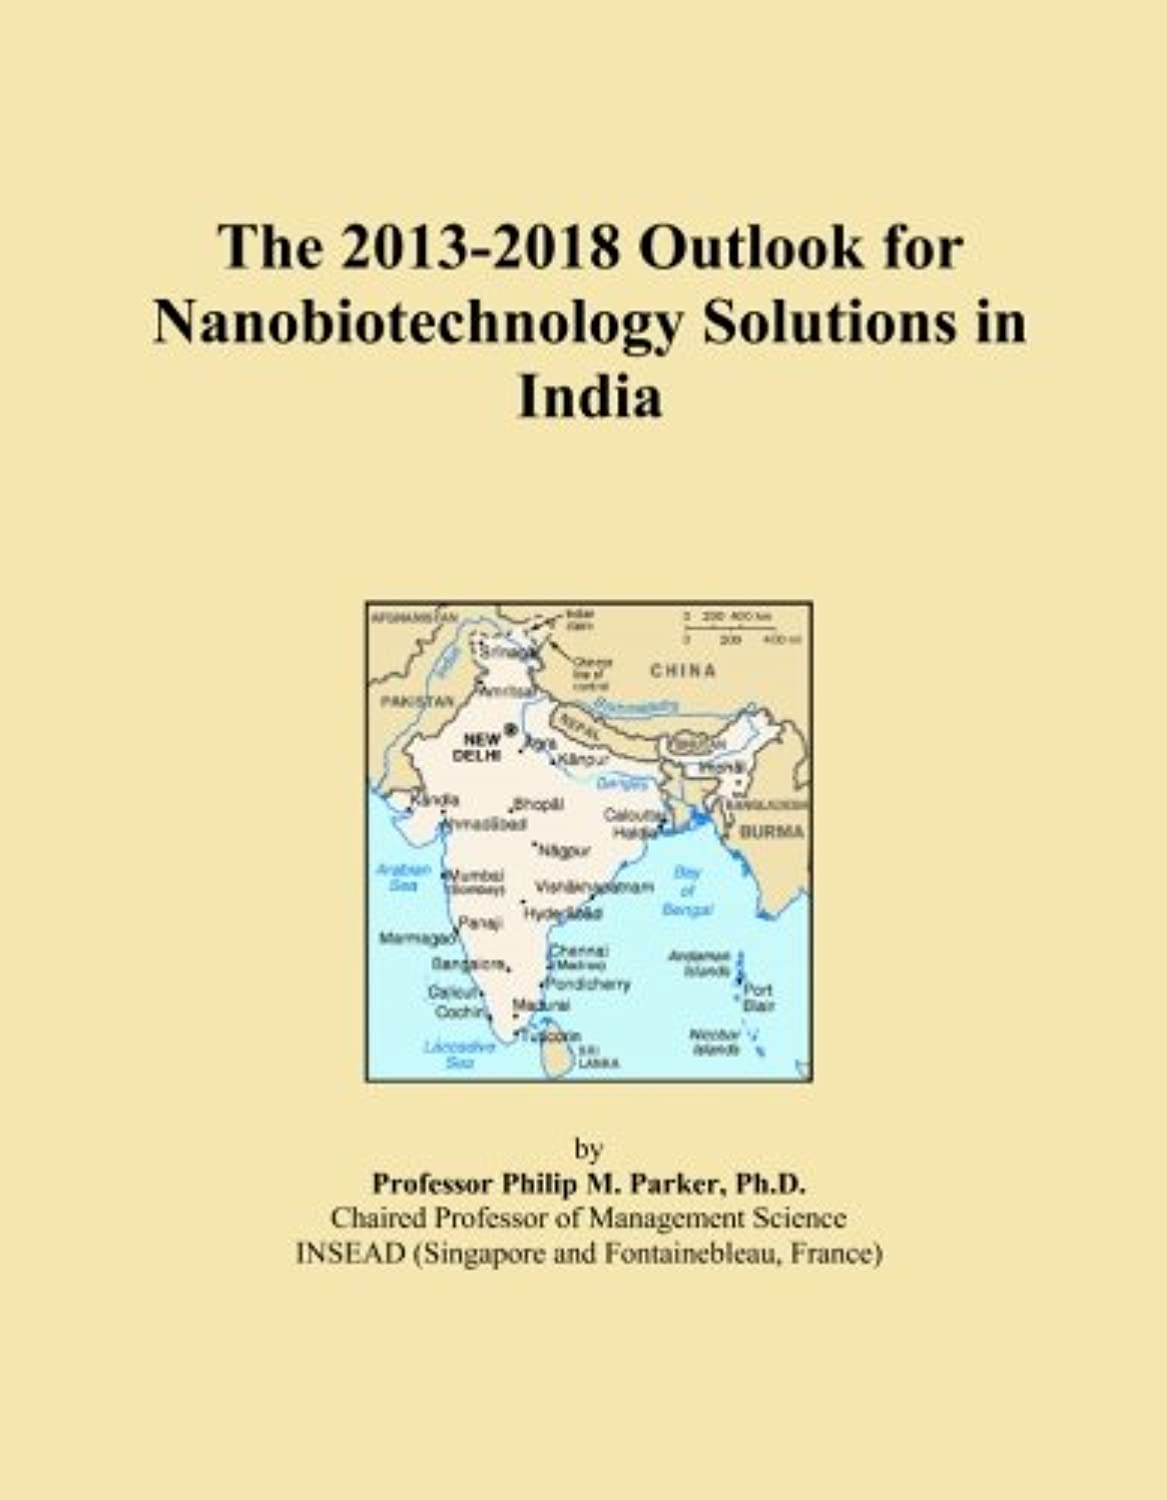 The 2013-2018 Outlook for Nanobiotechnology Solutions in India